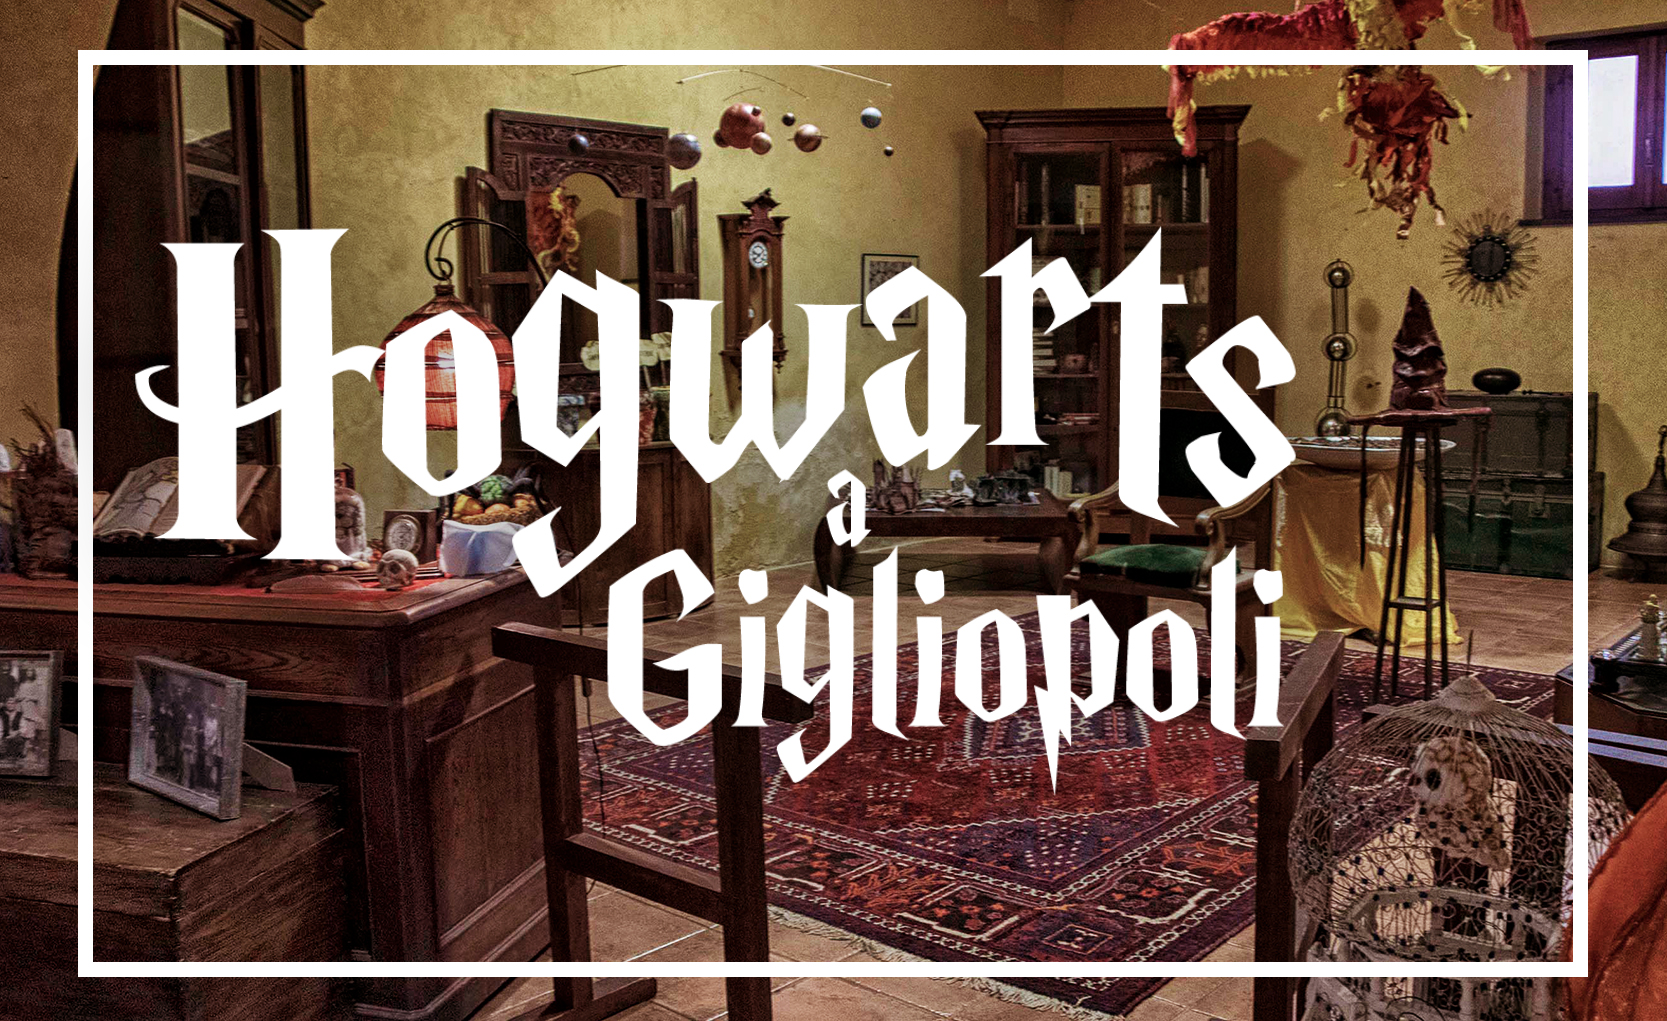 You are currently viewing Hogwarts a Gigliopoli